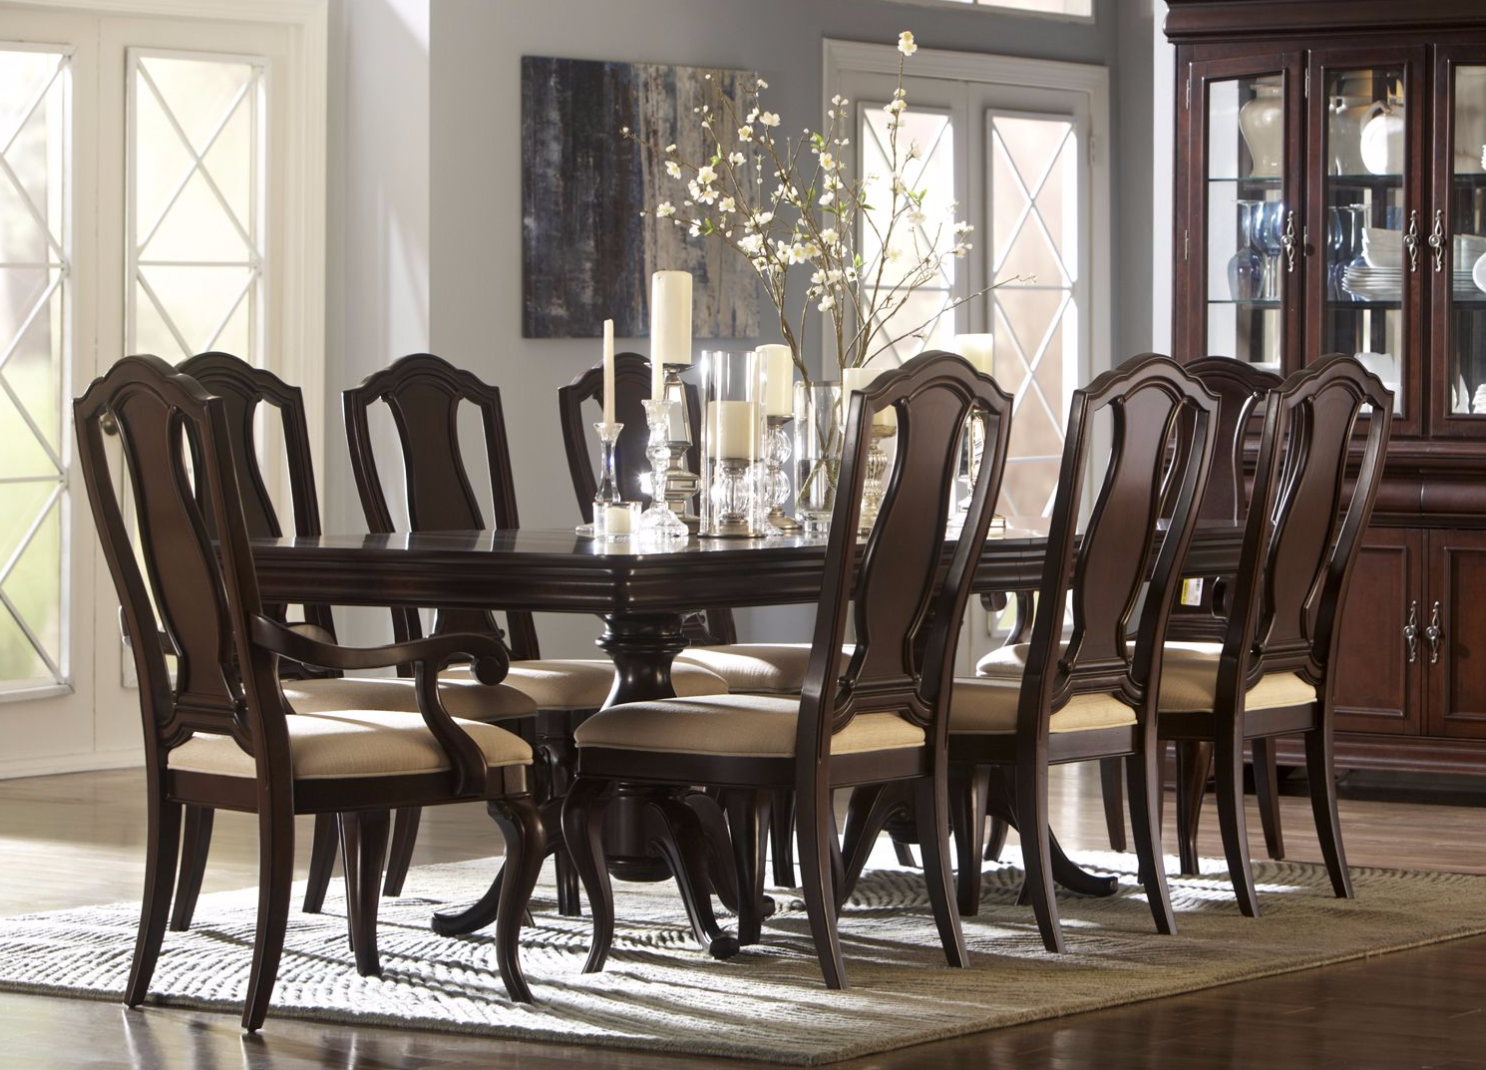 Dining Room Table Chairs Haverty S Orleans Remodel Ideas